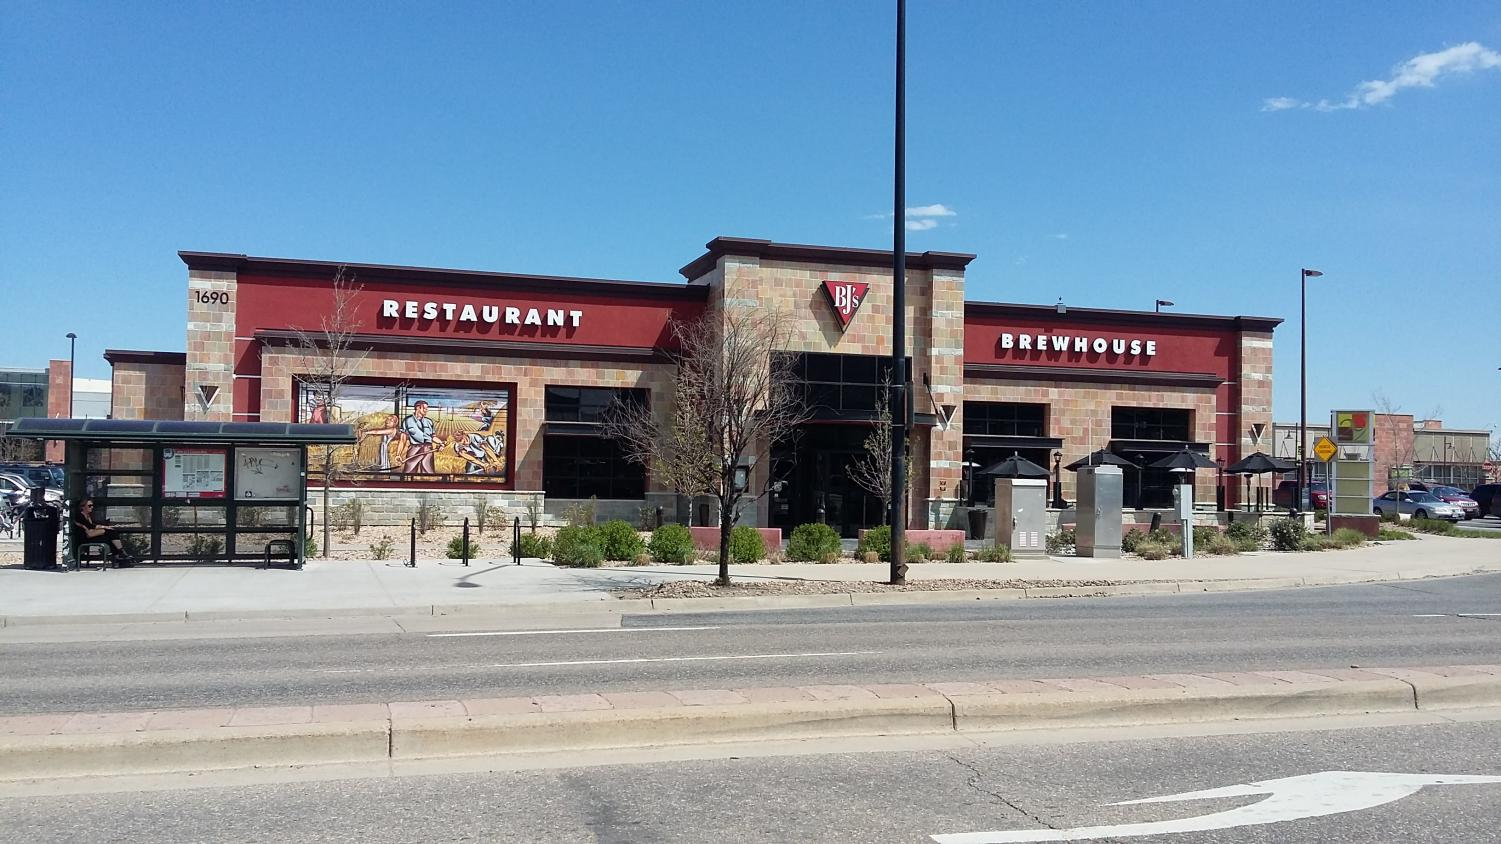 BJ's Restaurant Review